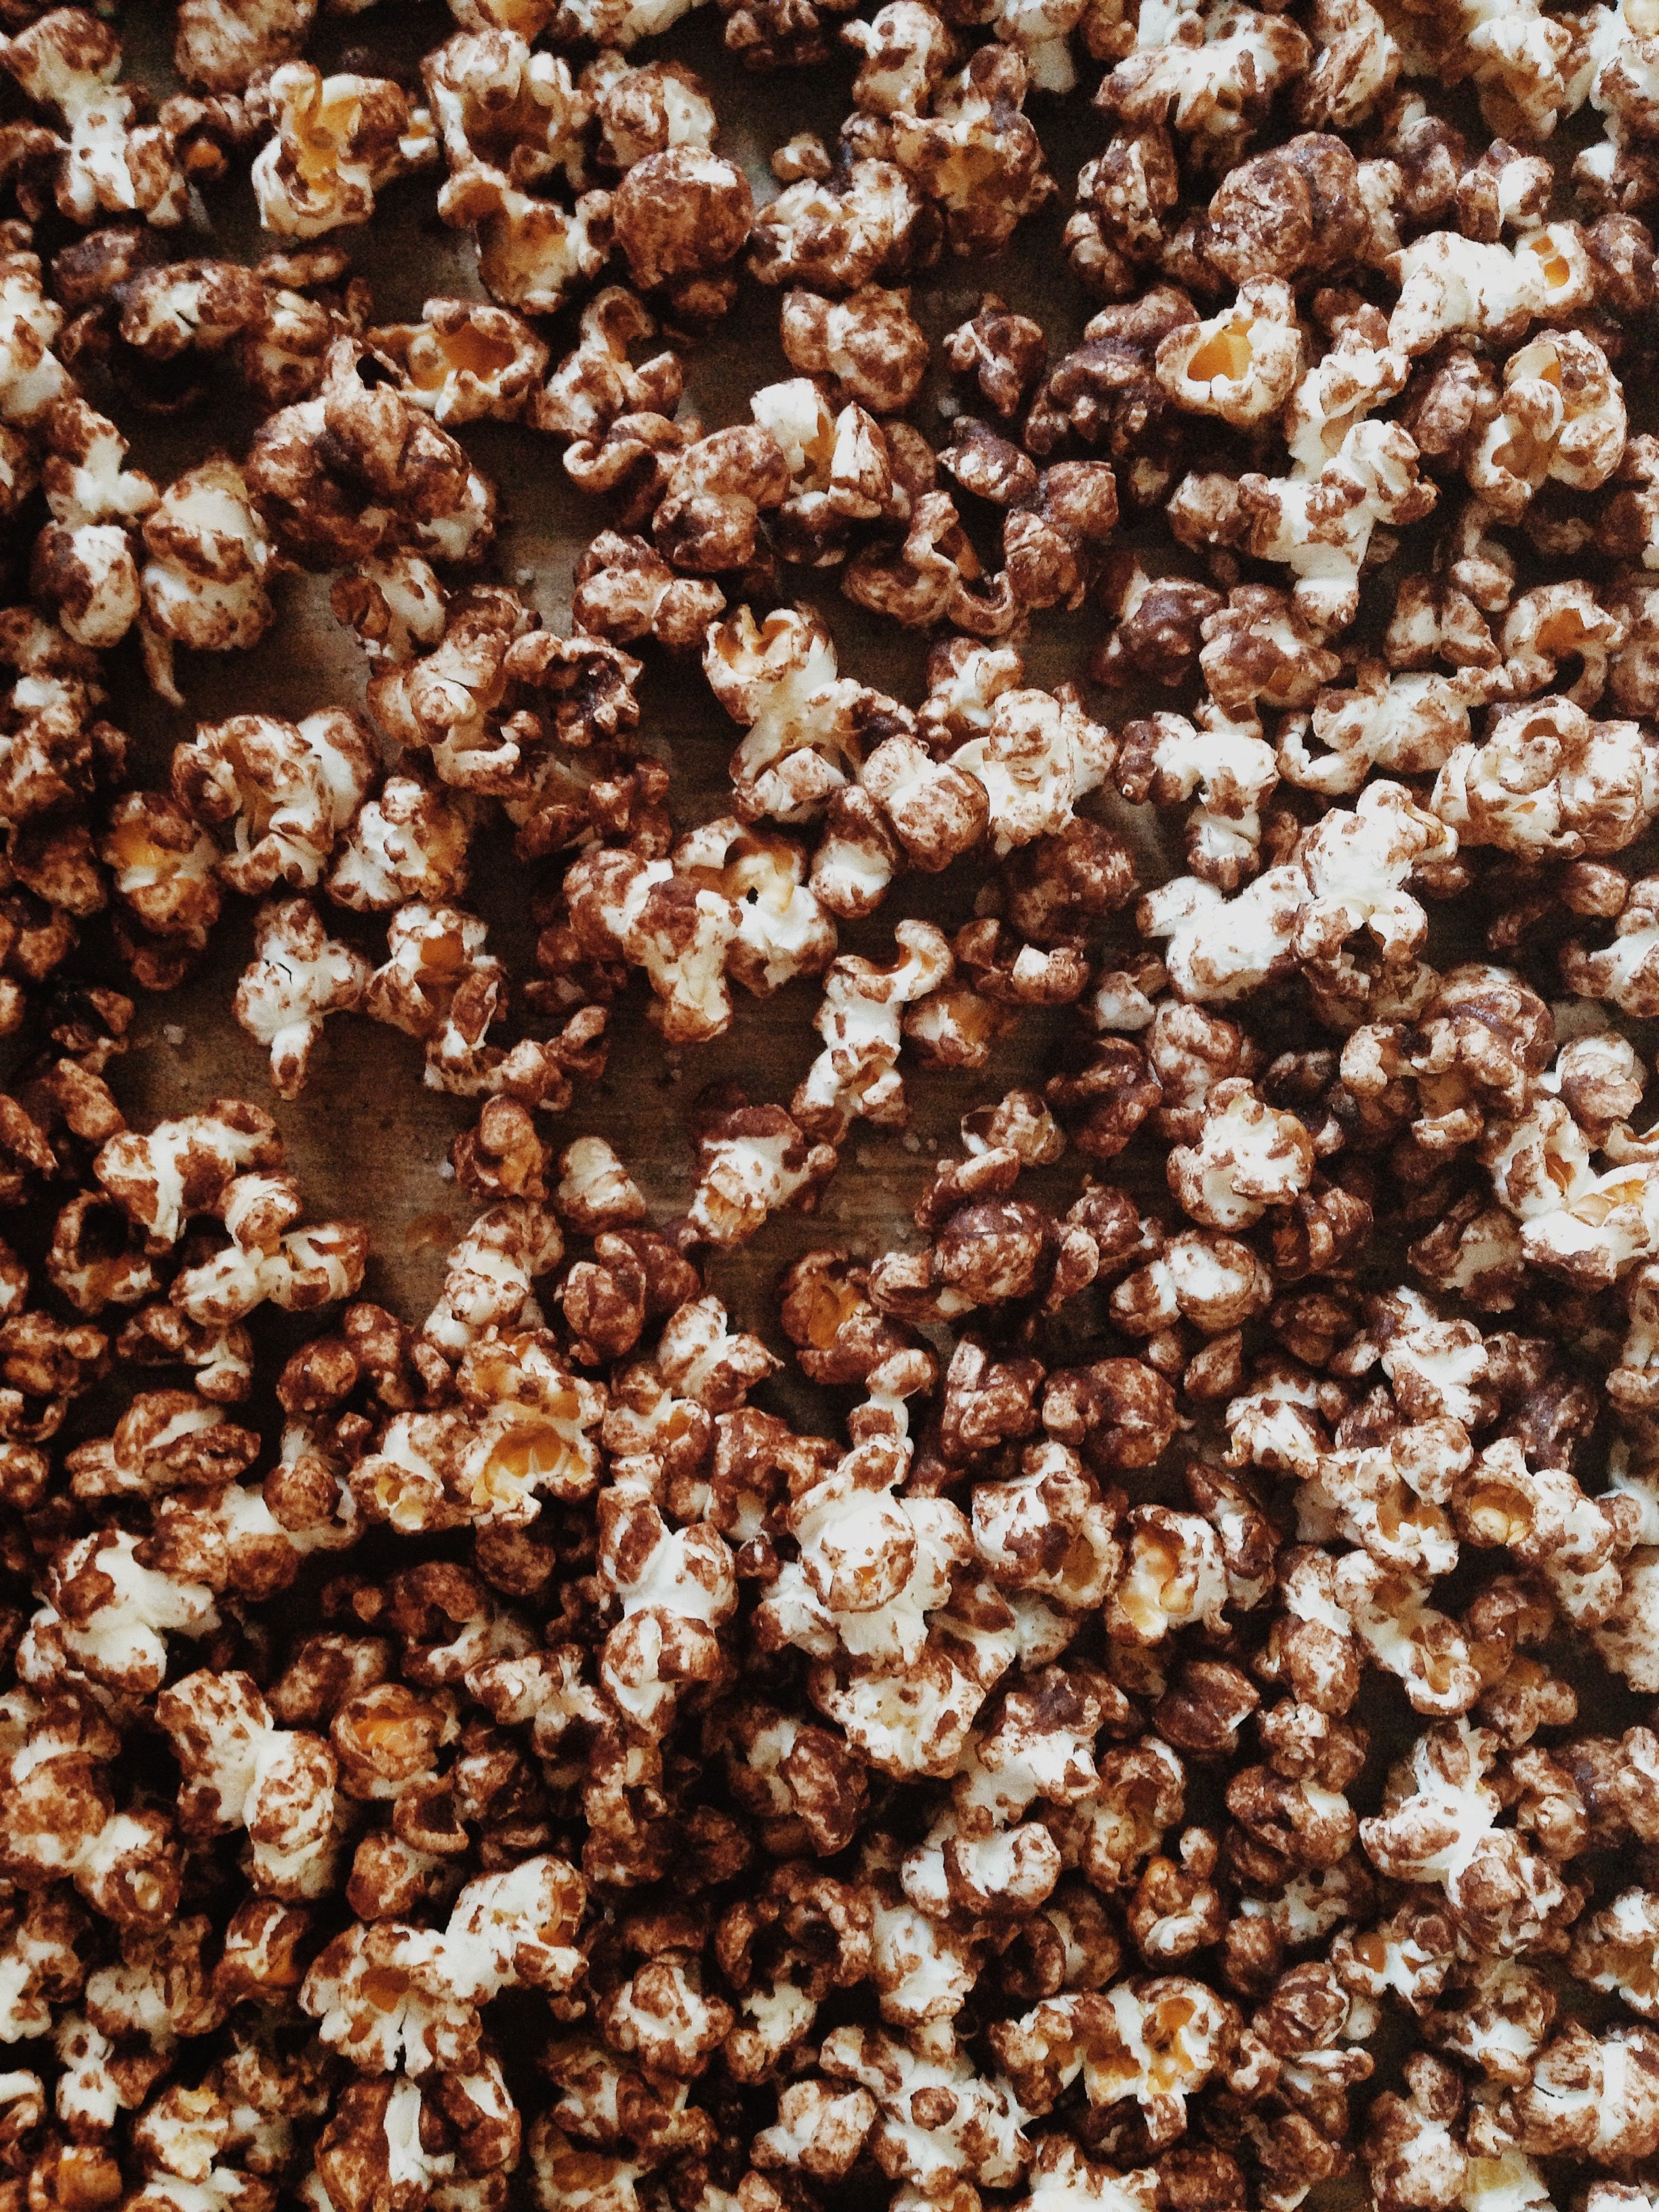 Crunchy, salty and sweet chocolate popcorn - the ultimate snack